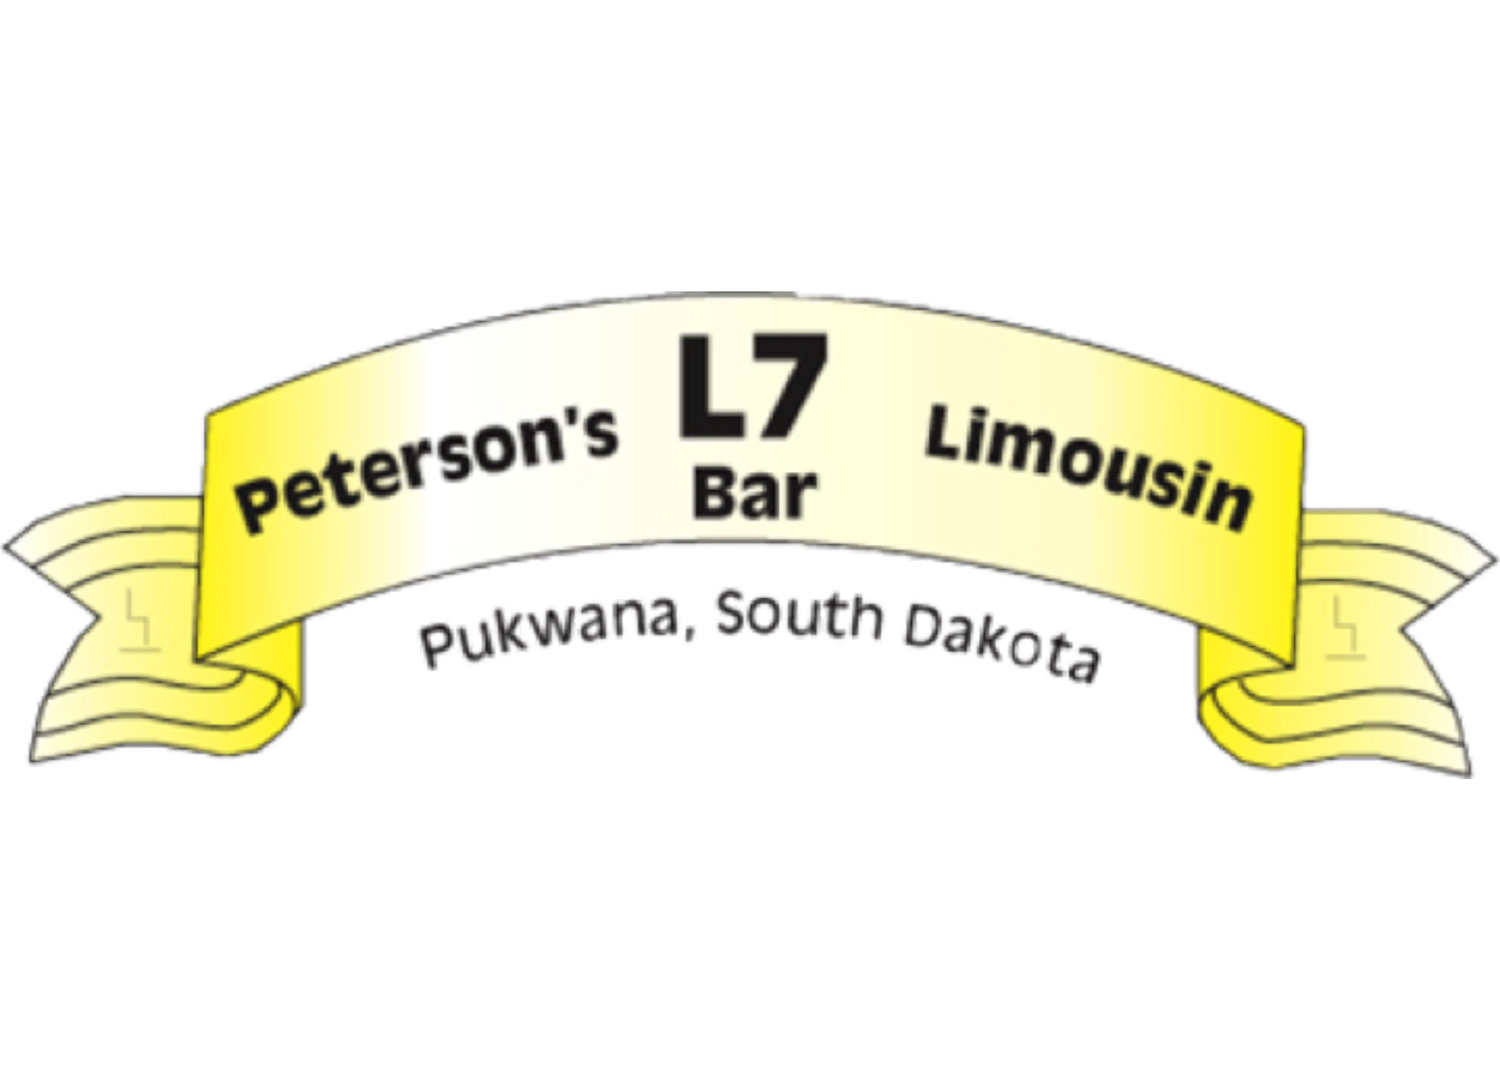 Peterson's L7 Bar Limousin